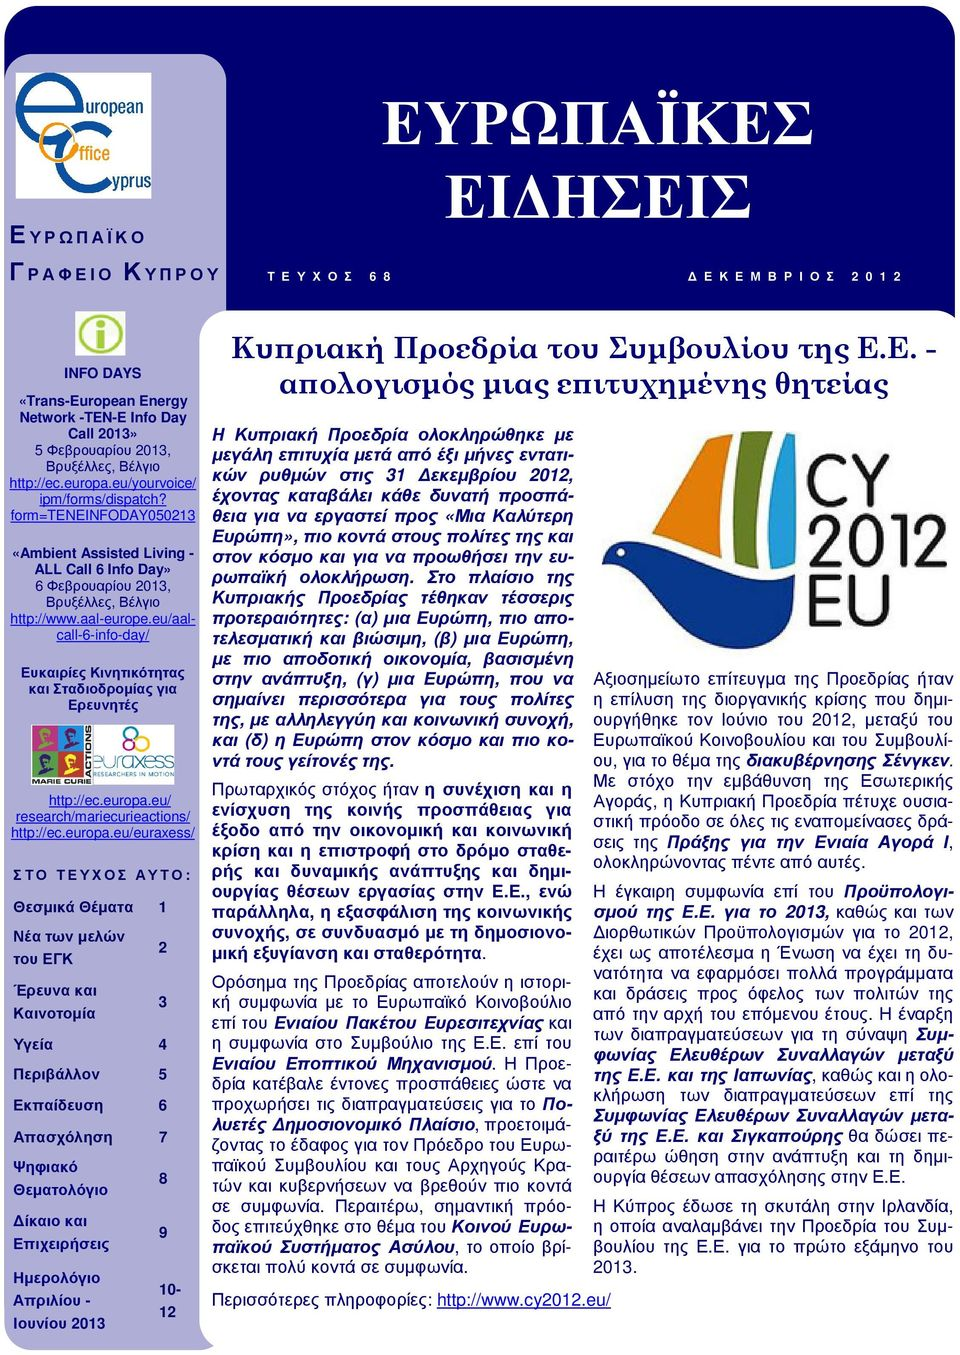 Βρυξέλλες, Βέλγιο http://ec.europa.eu/yourvoice/ ipm/forms/dispatch? form=teneinfoday050213 «Ambient Assisted Living - ALL Call 6 Info Day» 6 Φεβρουαρίου 2013, Βρυξέλλες, Βέλγιο http://www.aal-europe.